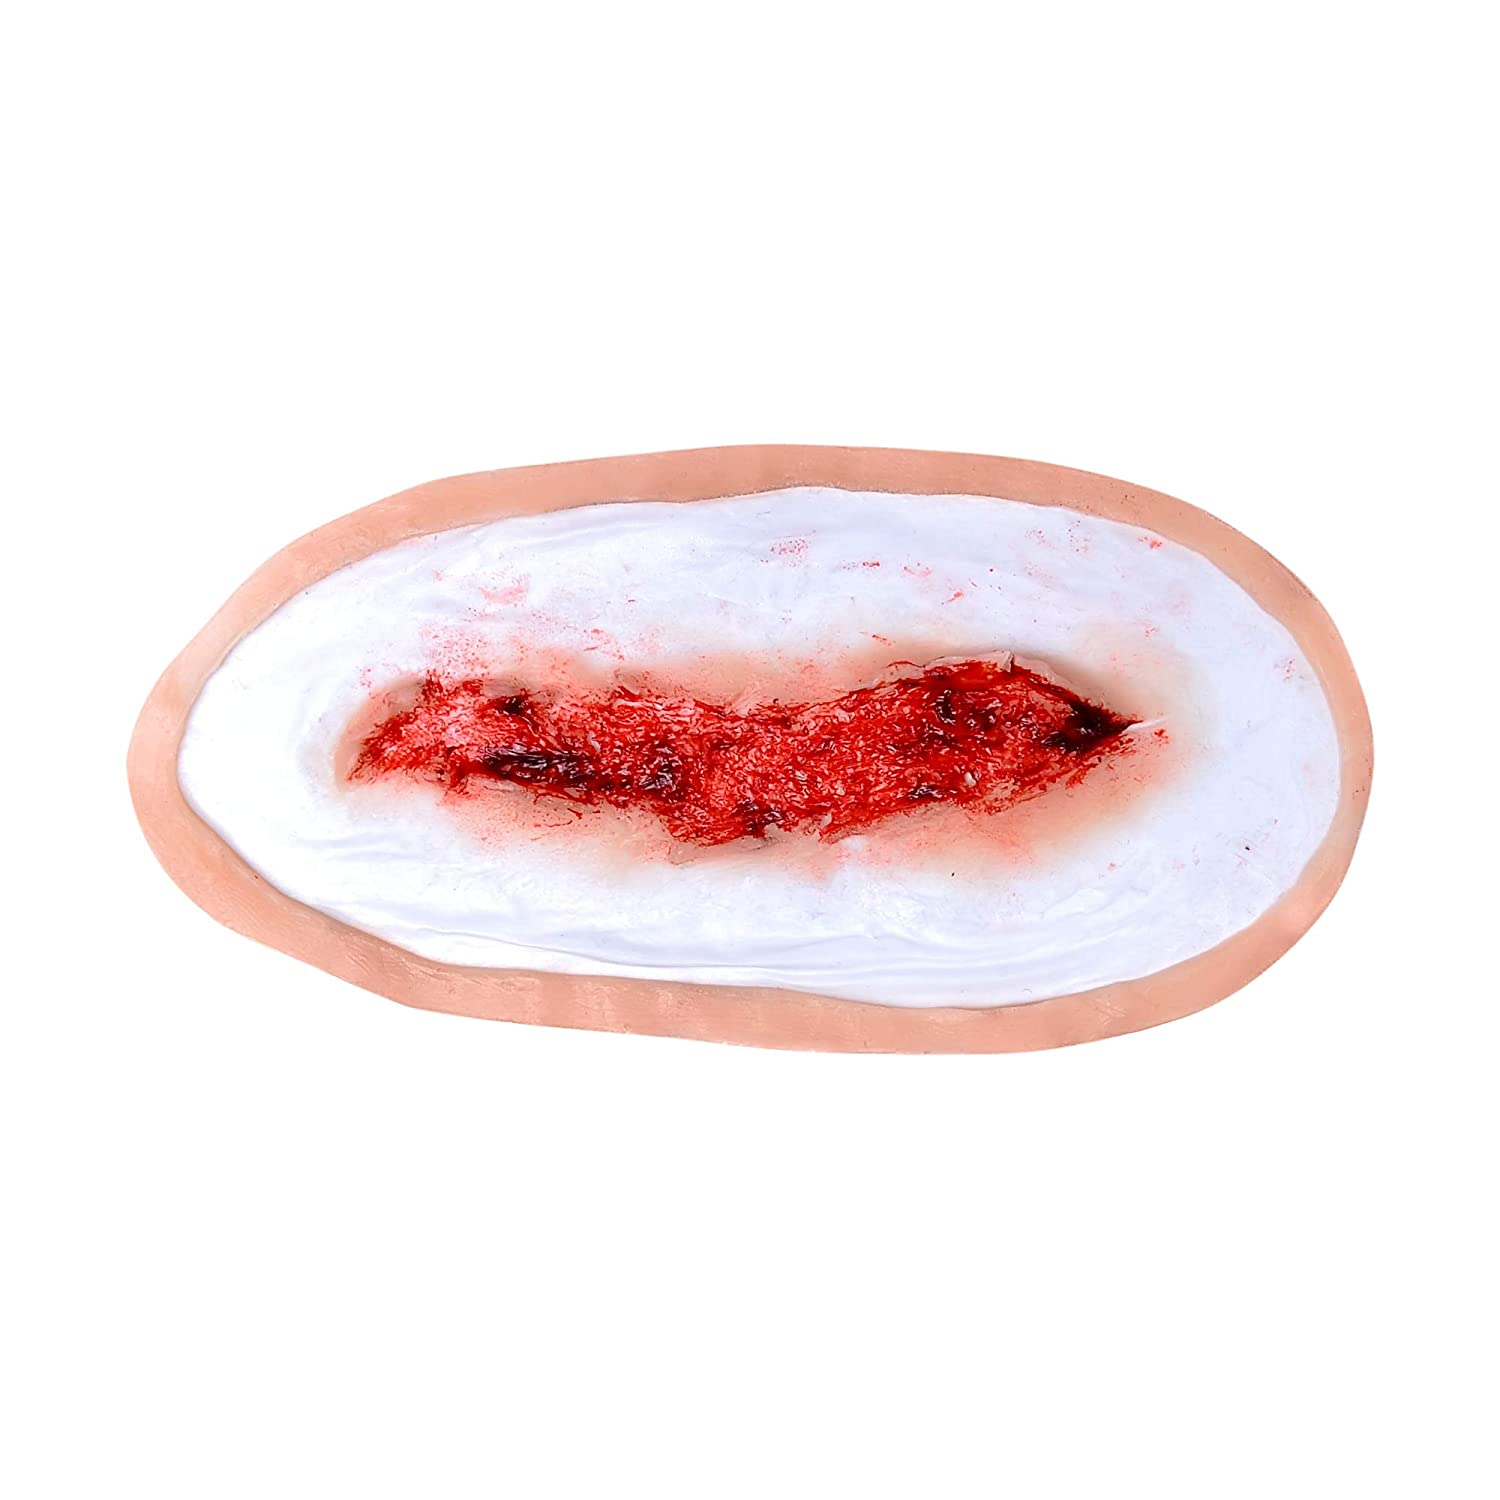 Forensic FX Simple Wound Pre-Colored Silicone Prosthetic Appliance, Special Effects Makeup for Halloween and Theater